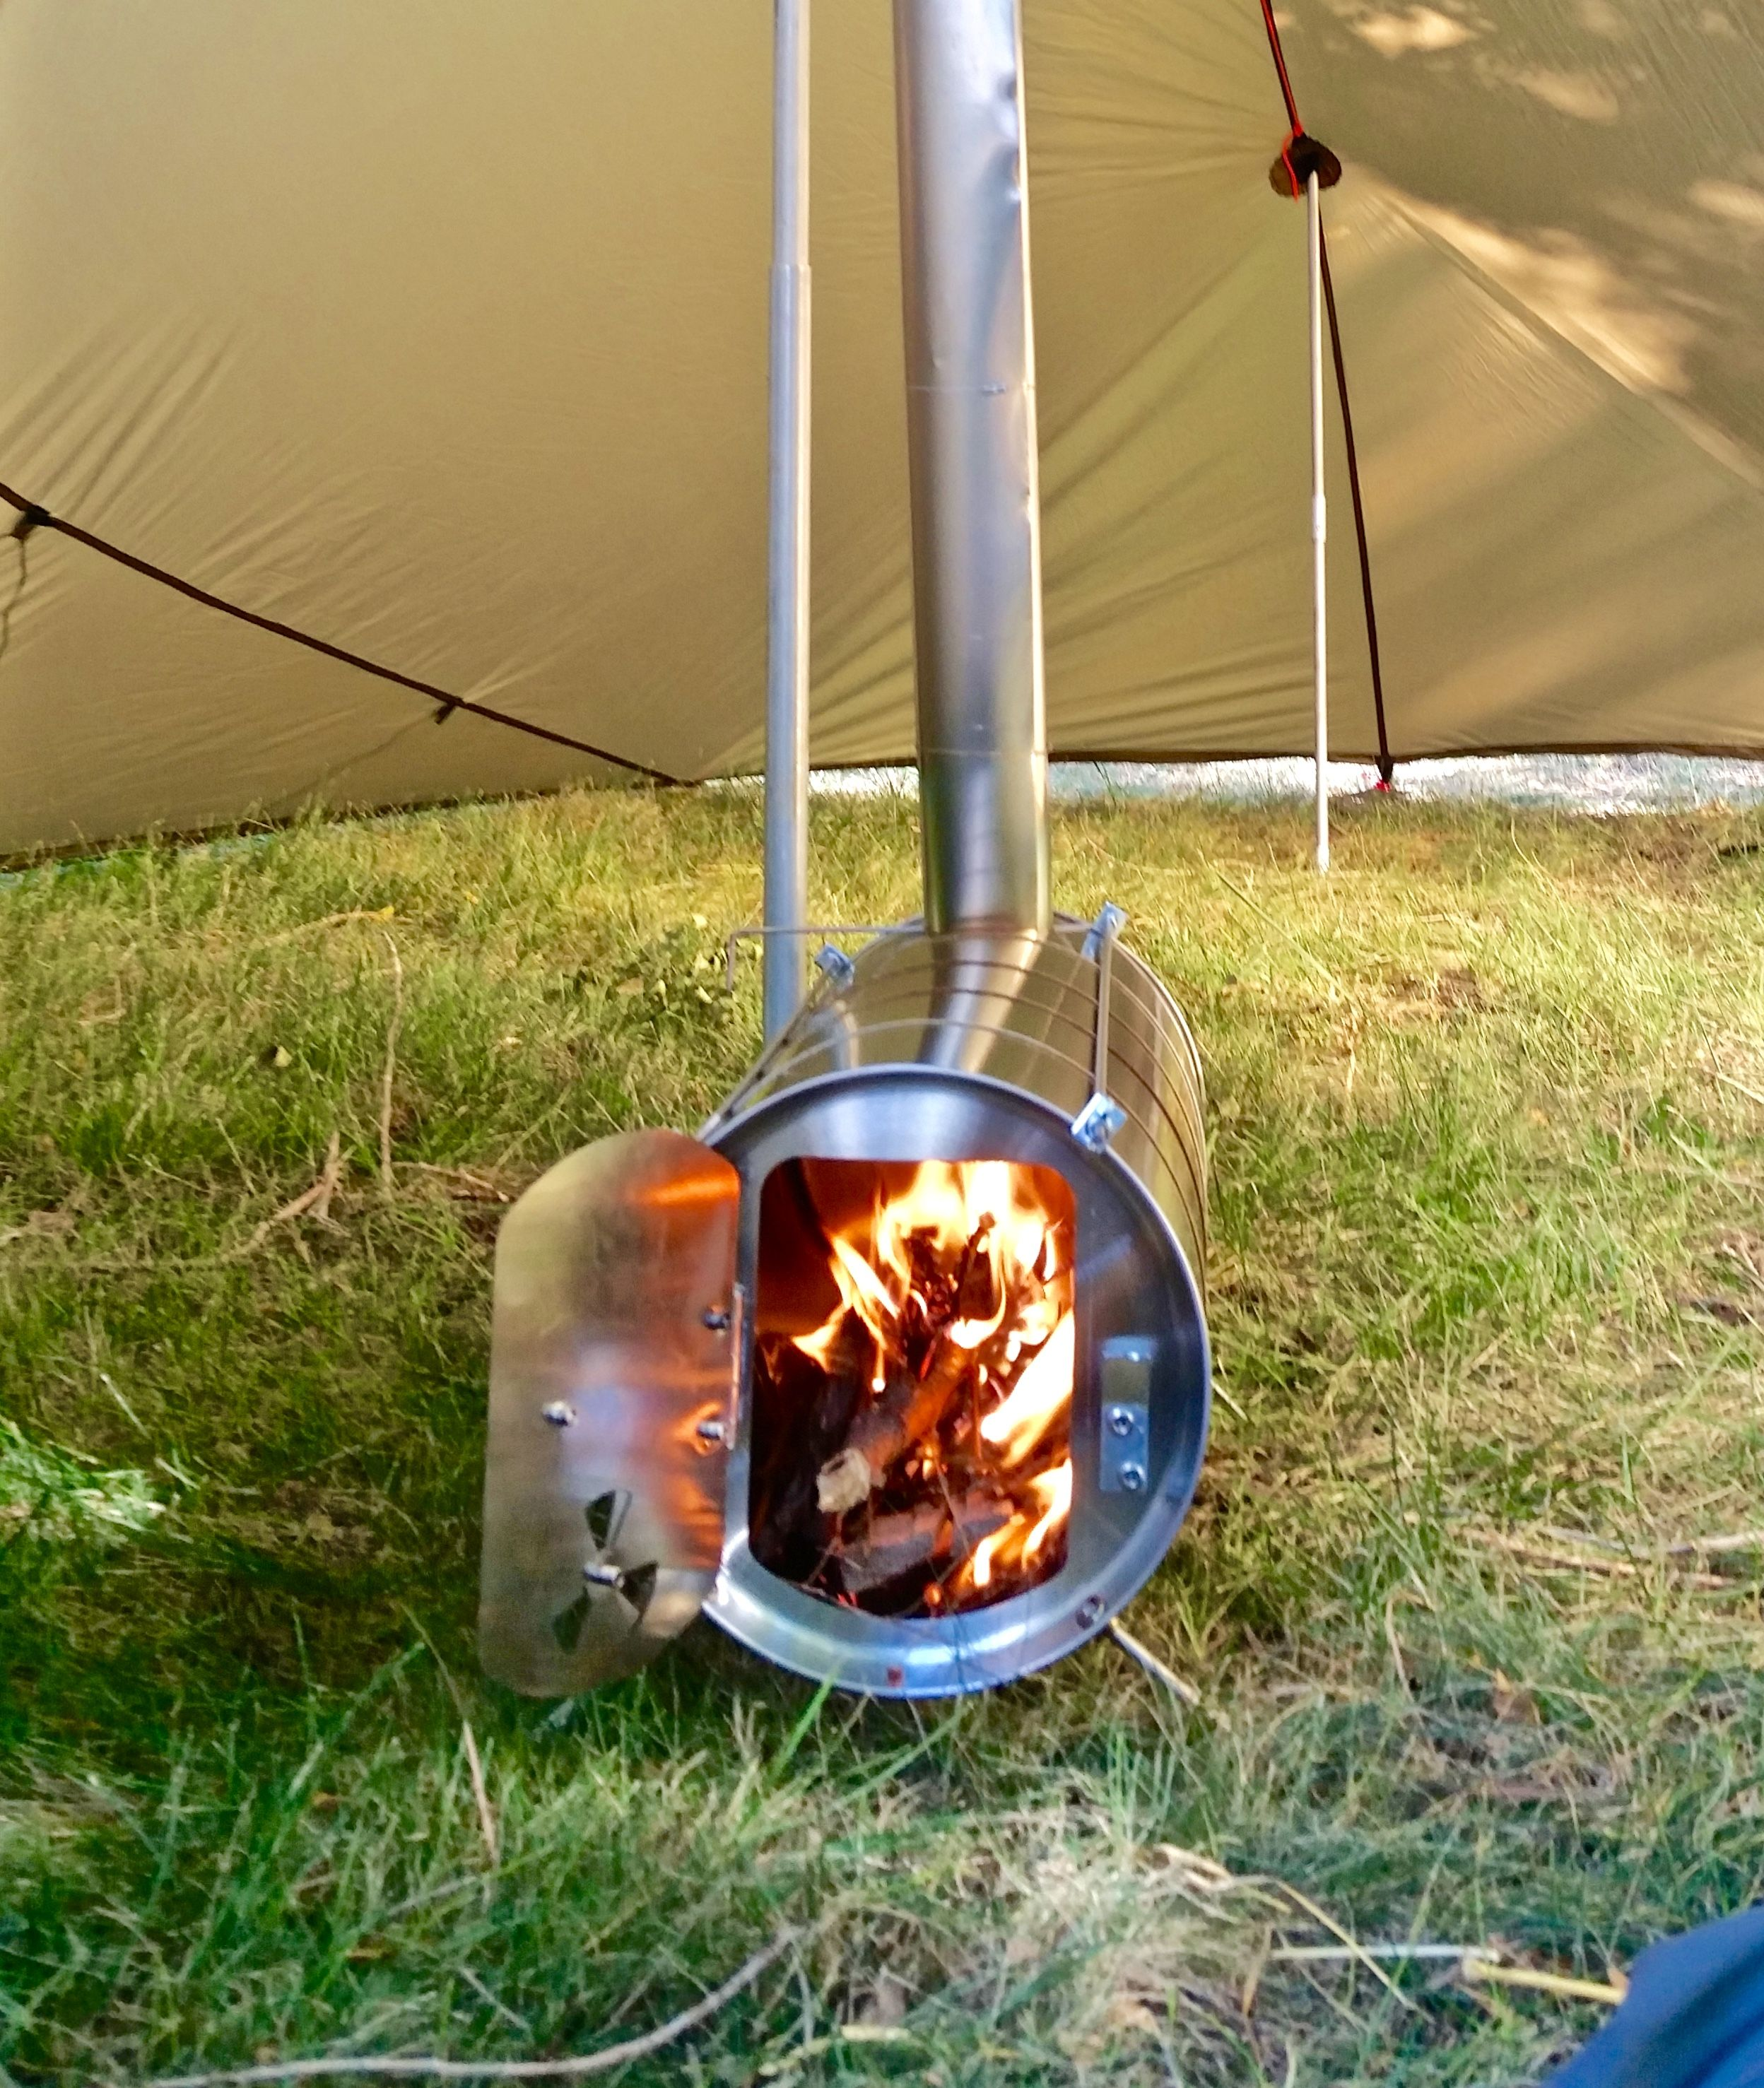 Our LiteOutdoors Titanium Stove is a great mix of light weight and functionality. With lengths of or you can order a stove to match your needs. & 20150928_154425 | Backpacking | Pinterest | Stove